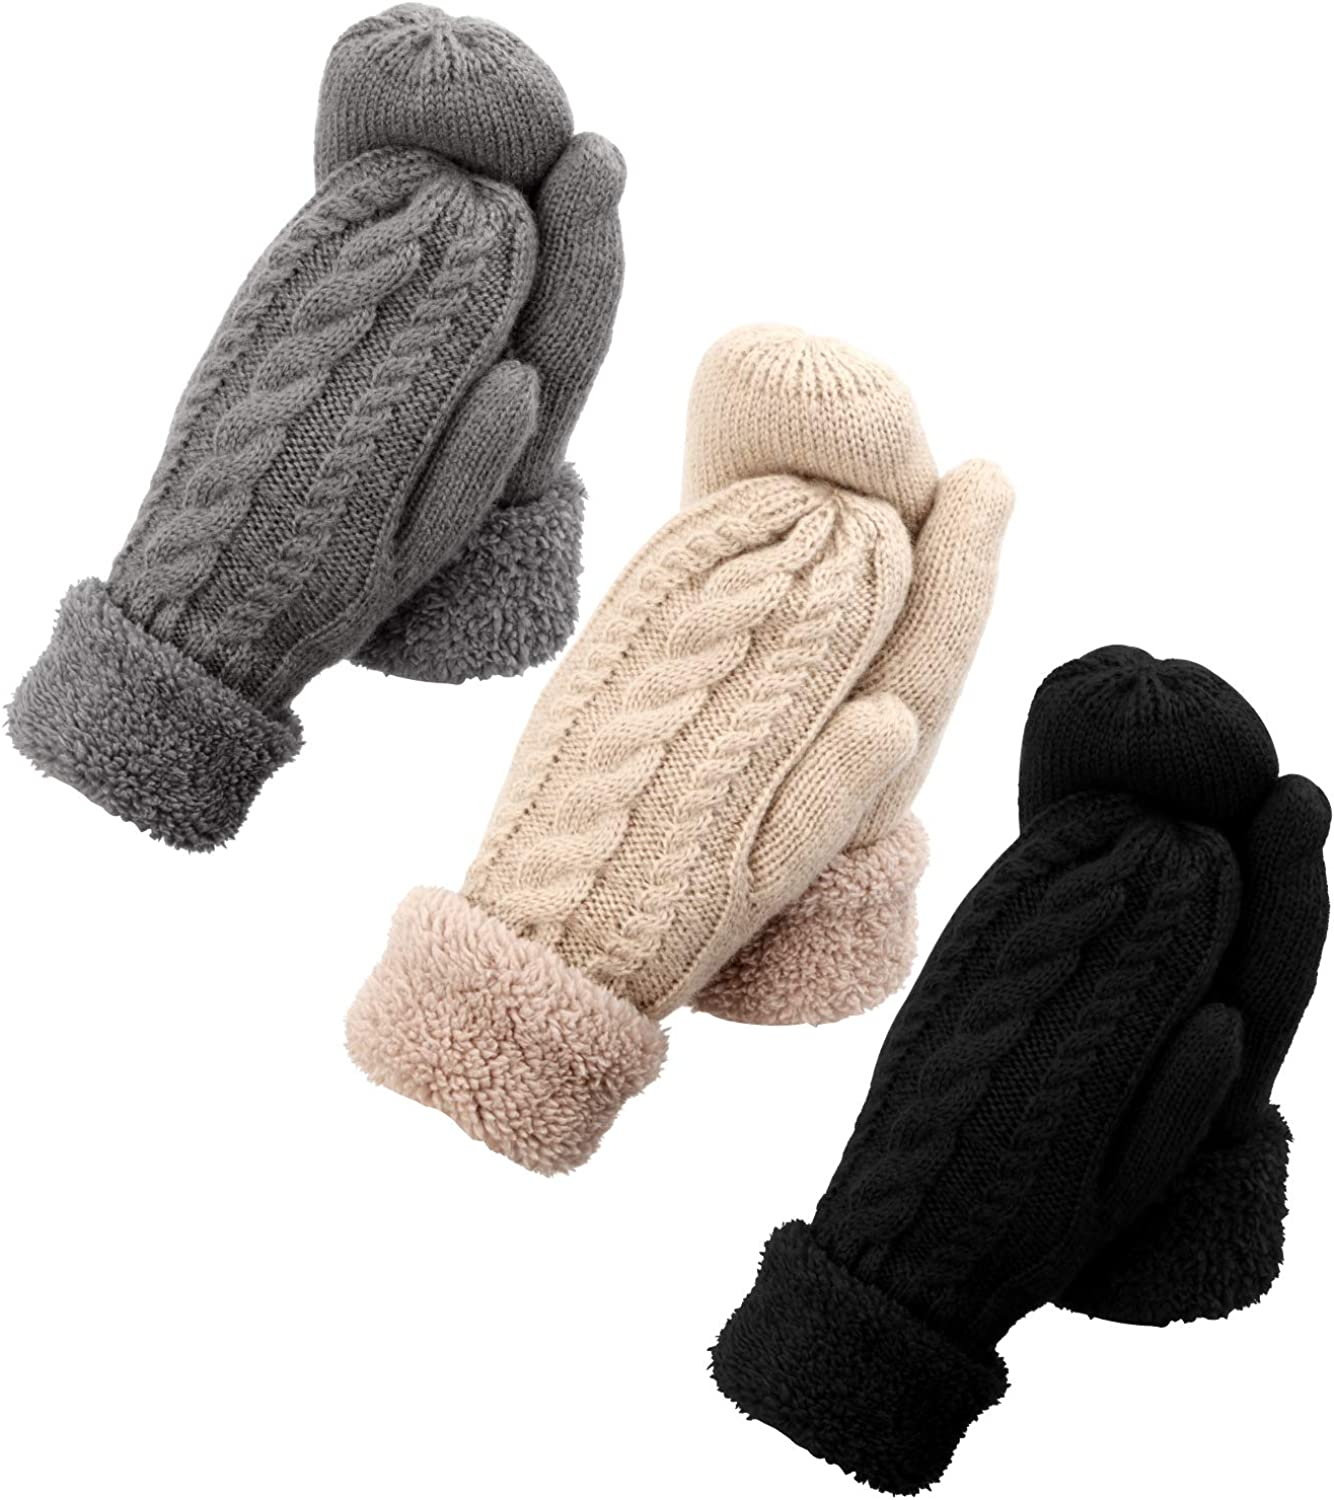 3 Pairs Winter Wool Mitten Gloves For Women,Wool Knit Thick Gloves With Thick Fleece Lining Gift: Clothing